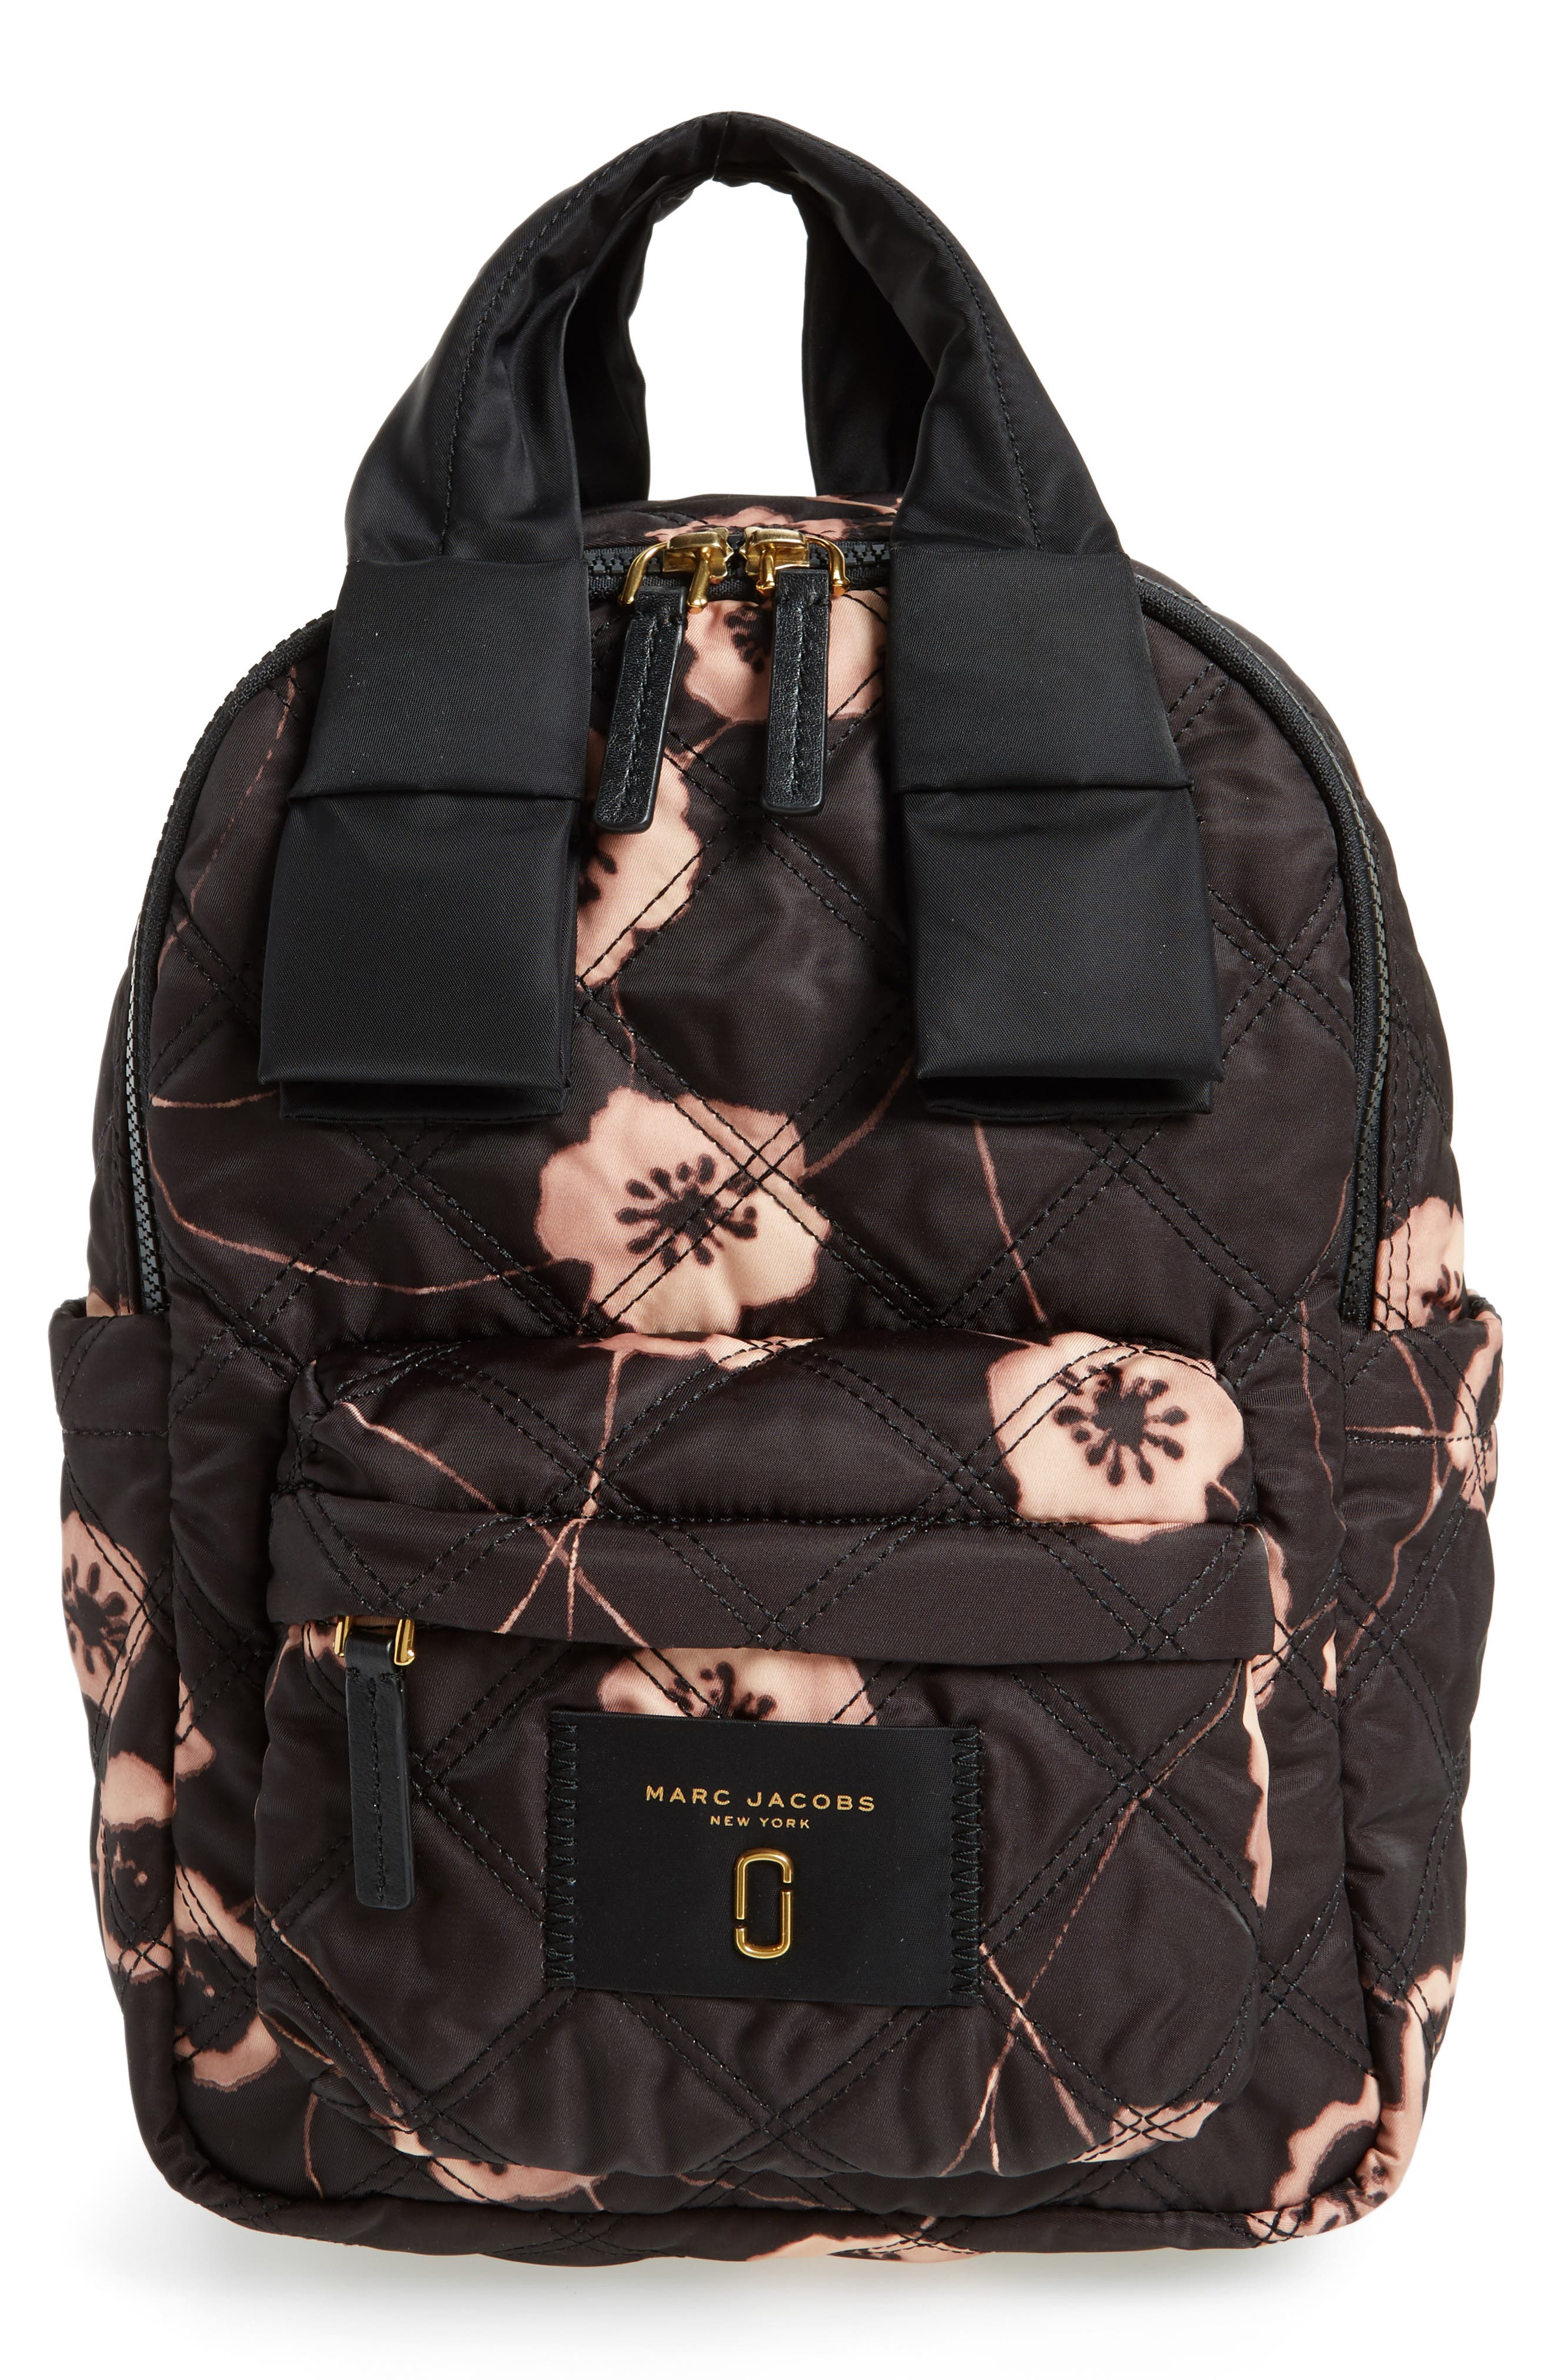 Small Violet Vines Knot Backpack,                             Main thumbnail 1, color,                             002